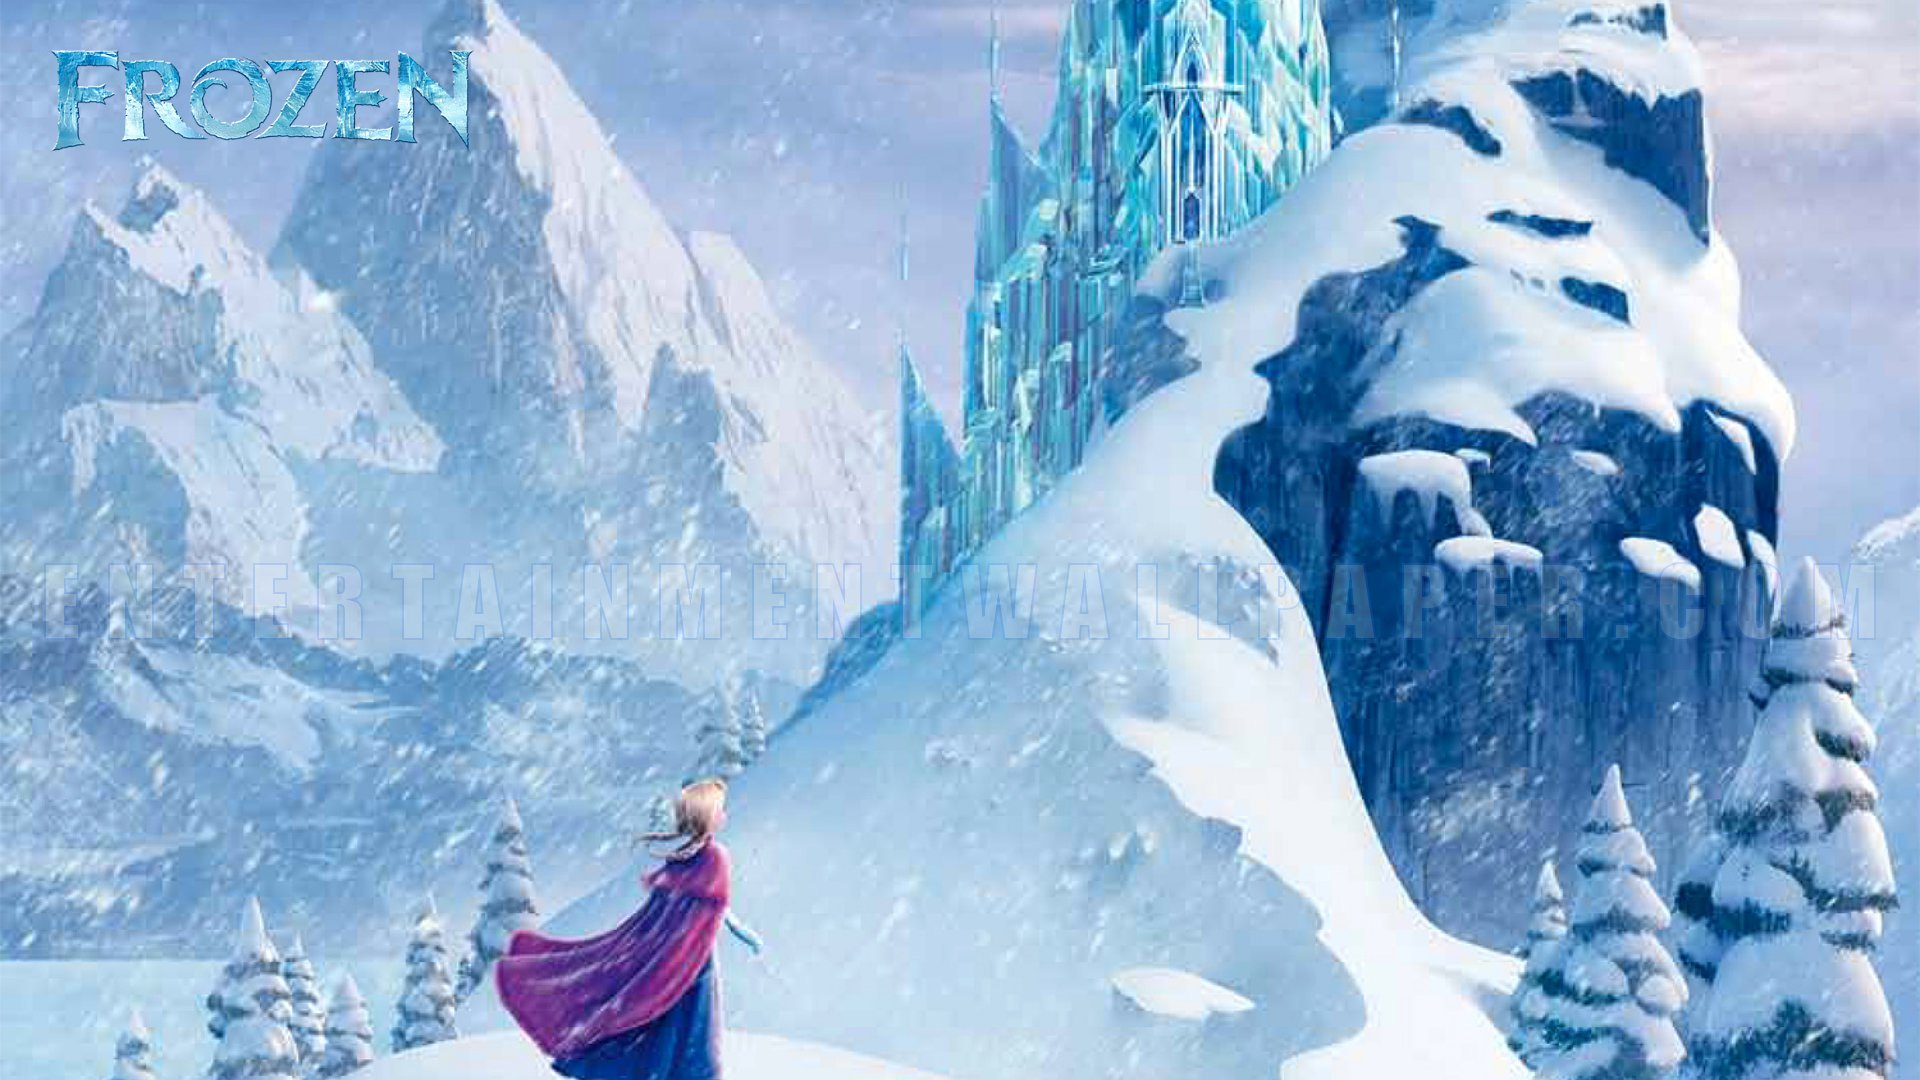 How to be a successful artist: A creative interpretation of Disney's Frozen